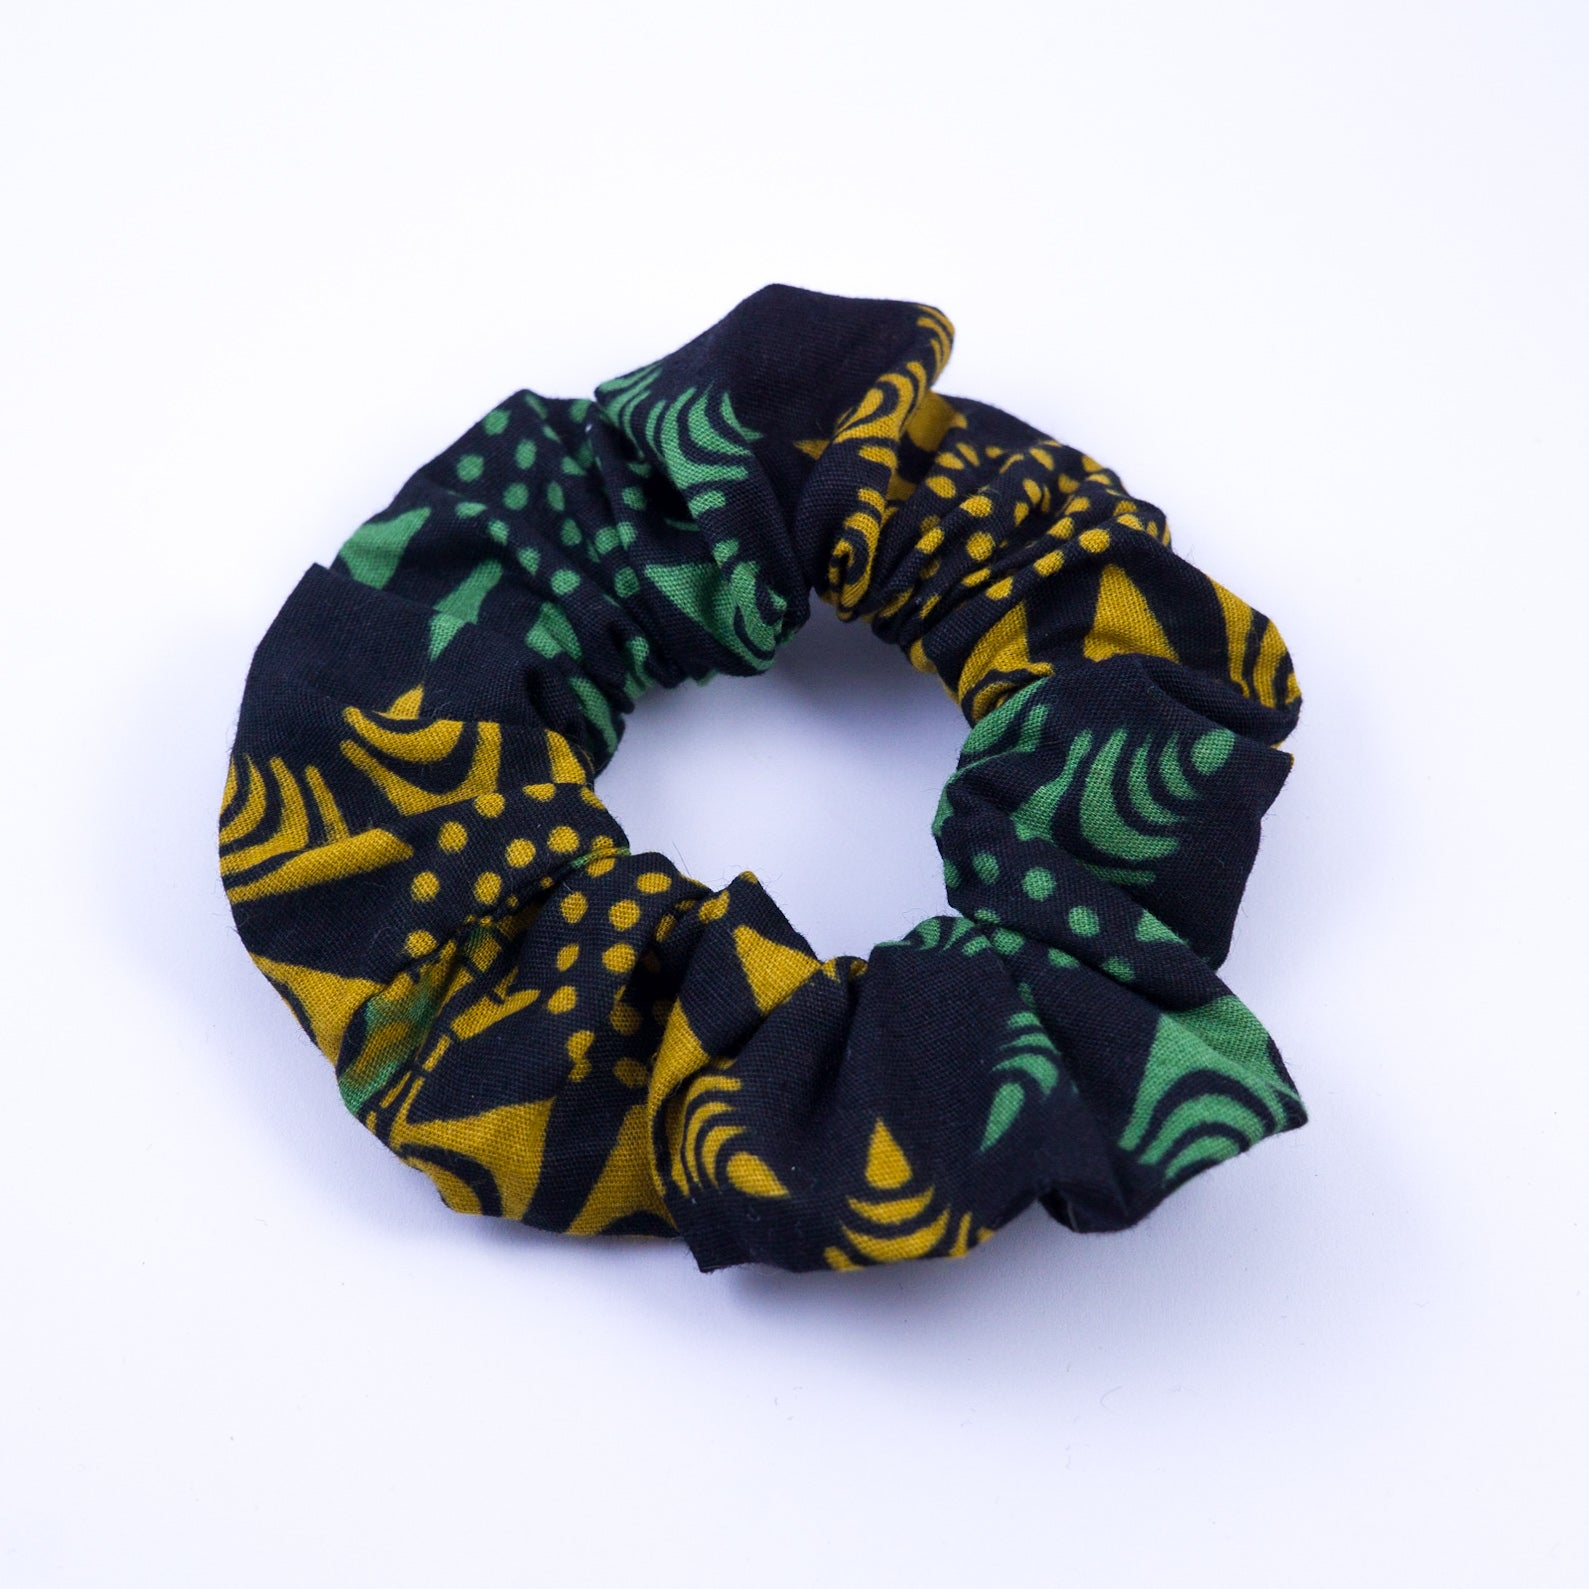 RITA Batik Scrunchie - MaryamBayam – Better in Batik